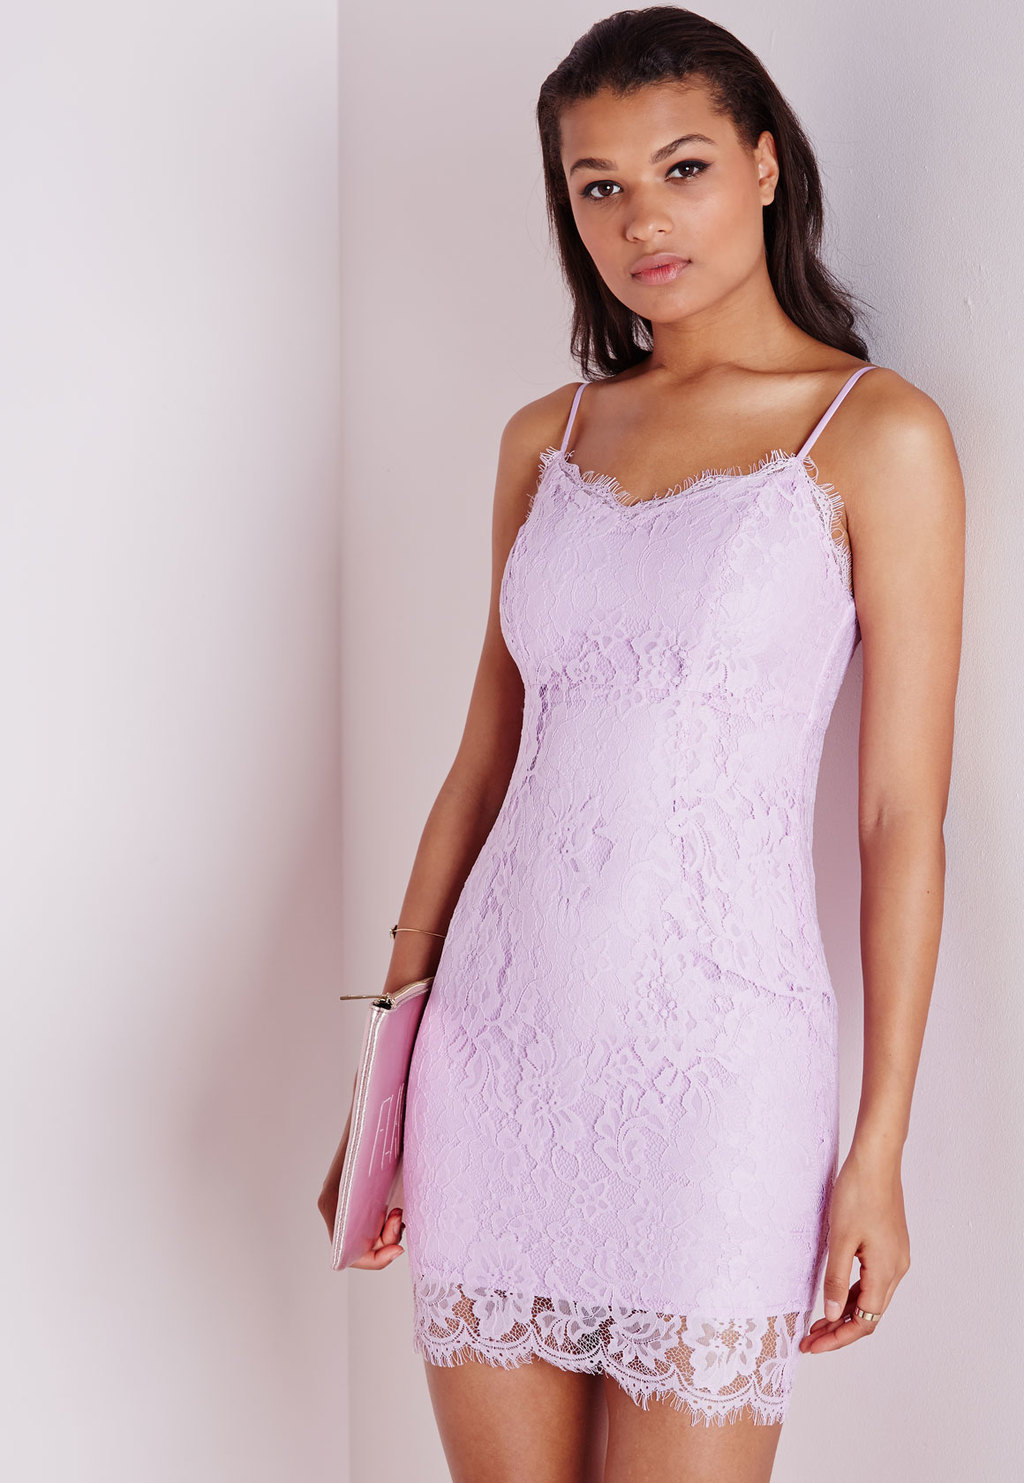 Lace Strappy Bodycon Dress Lilac, Mauve - length: mid thigh; neckline: low v-neck; sleeve style: spaghetti straps; fit: tight; style: bodycon; predominant colour: lilac; occasions: evening, occasion; fibres: polyester/polyamide - stretch; sleeve length: sleeveless; texture group: lace; pattern type: fabric; pattern: patterned/print; embellishment: lace; season: s/s 2015